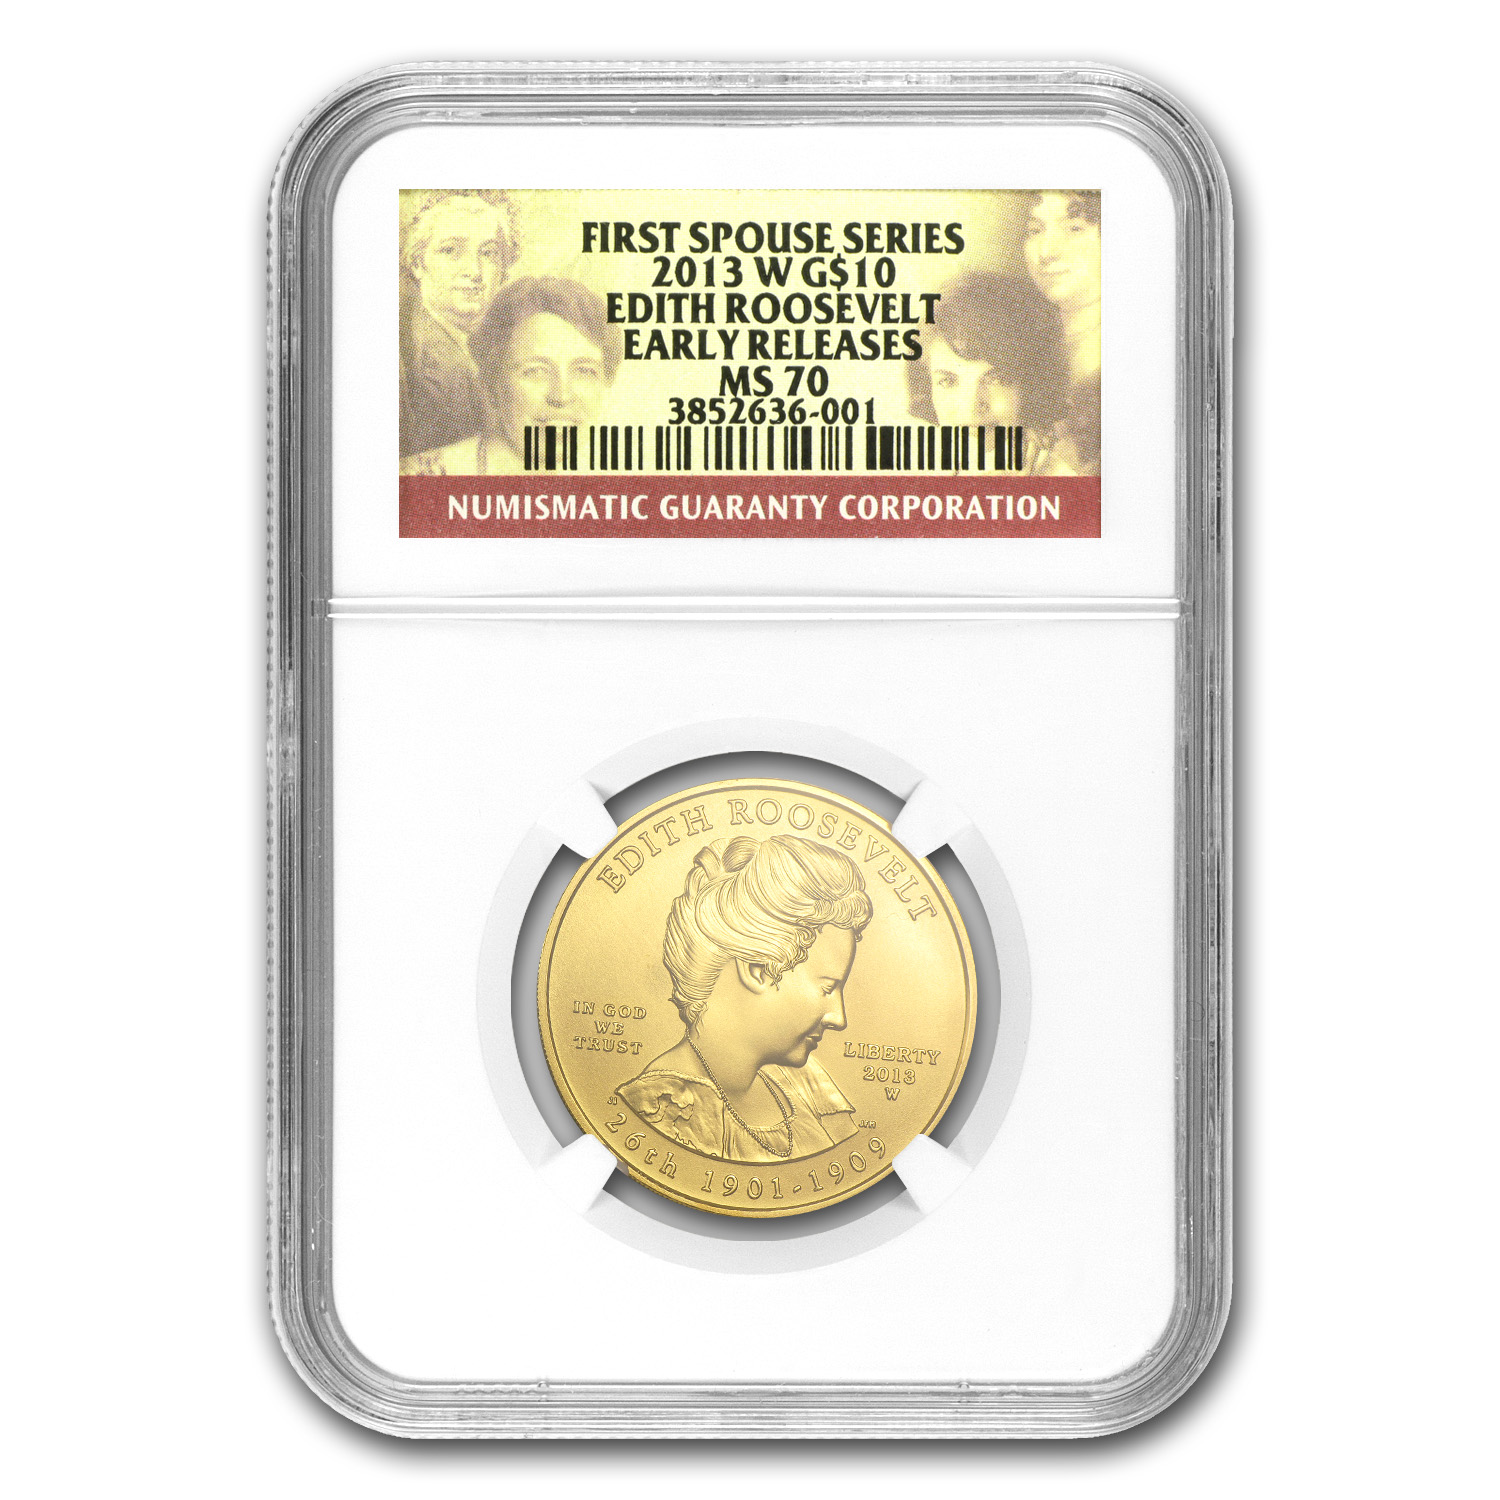 2013-W 1/2 oz Gold Edith Roosevelt MS-70 NGC (Early Release)